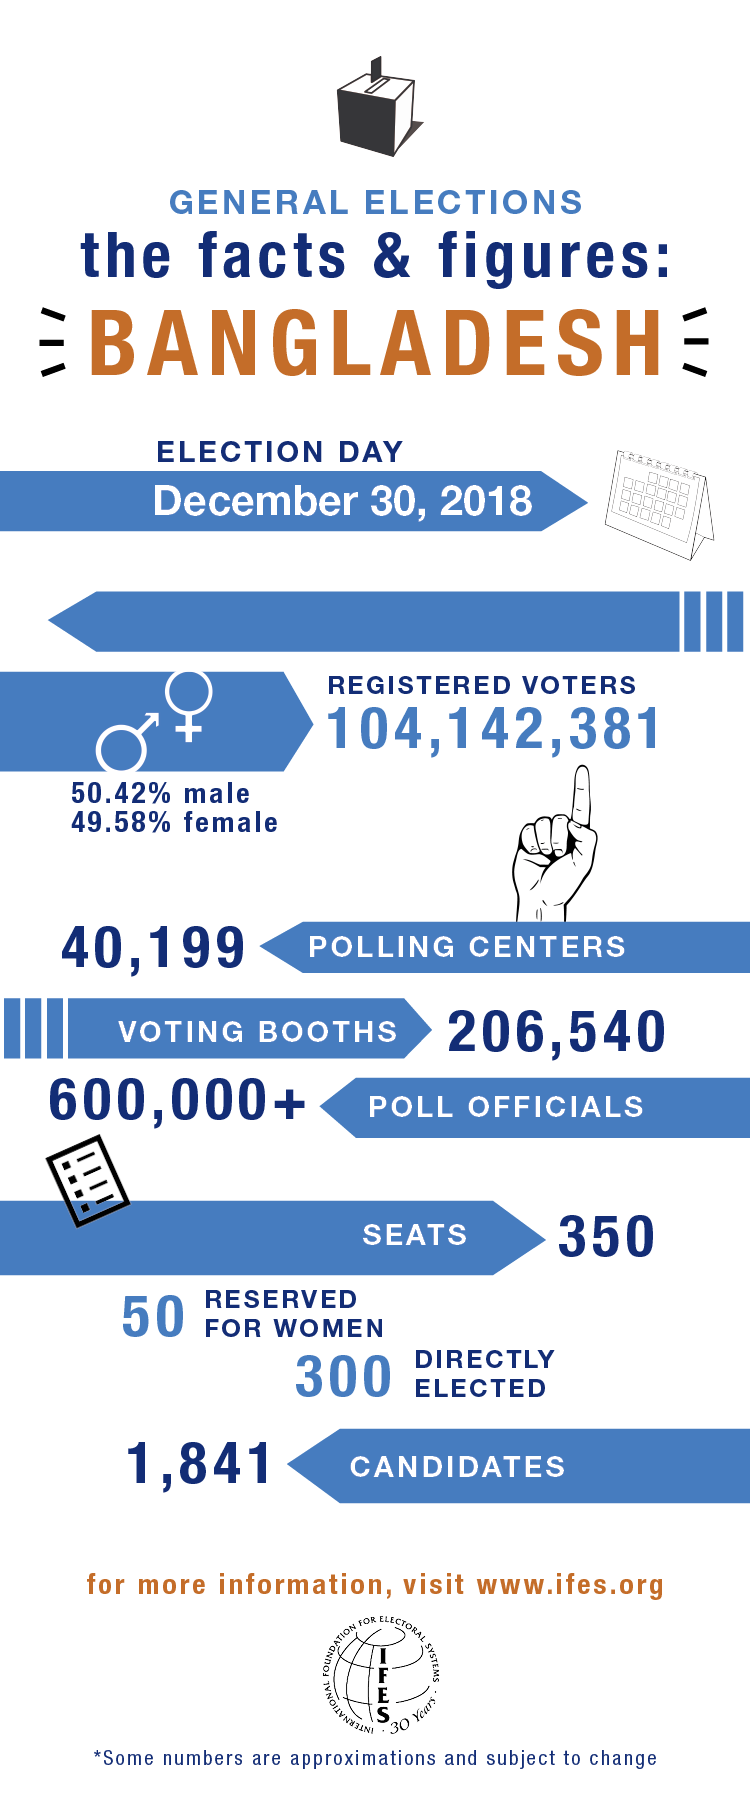 Elections in Bangladesh: 2018 General Elections   IFES